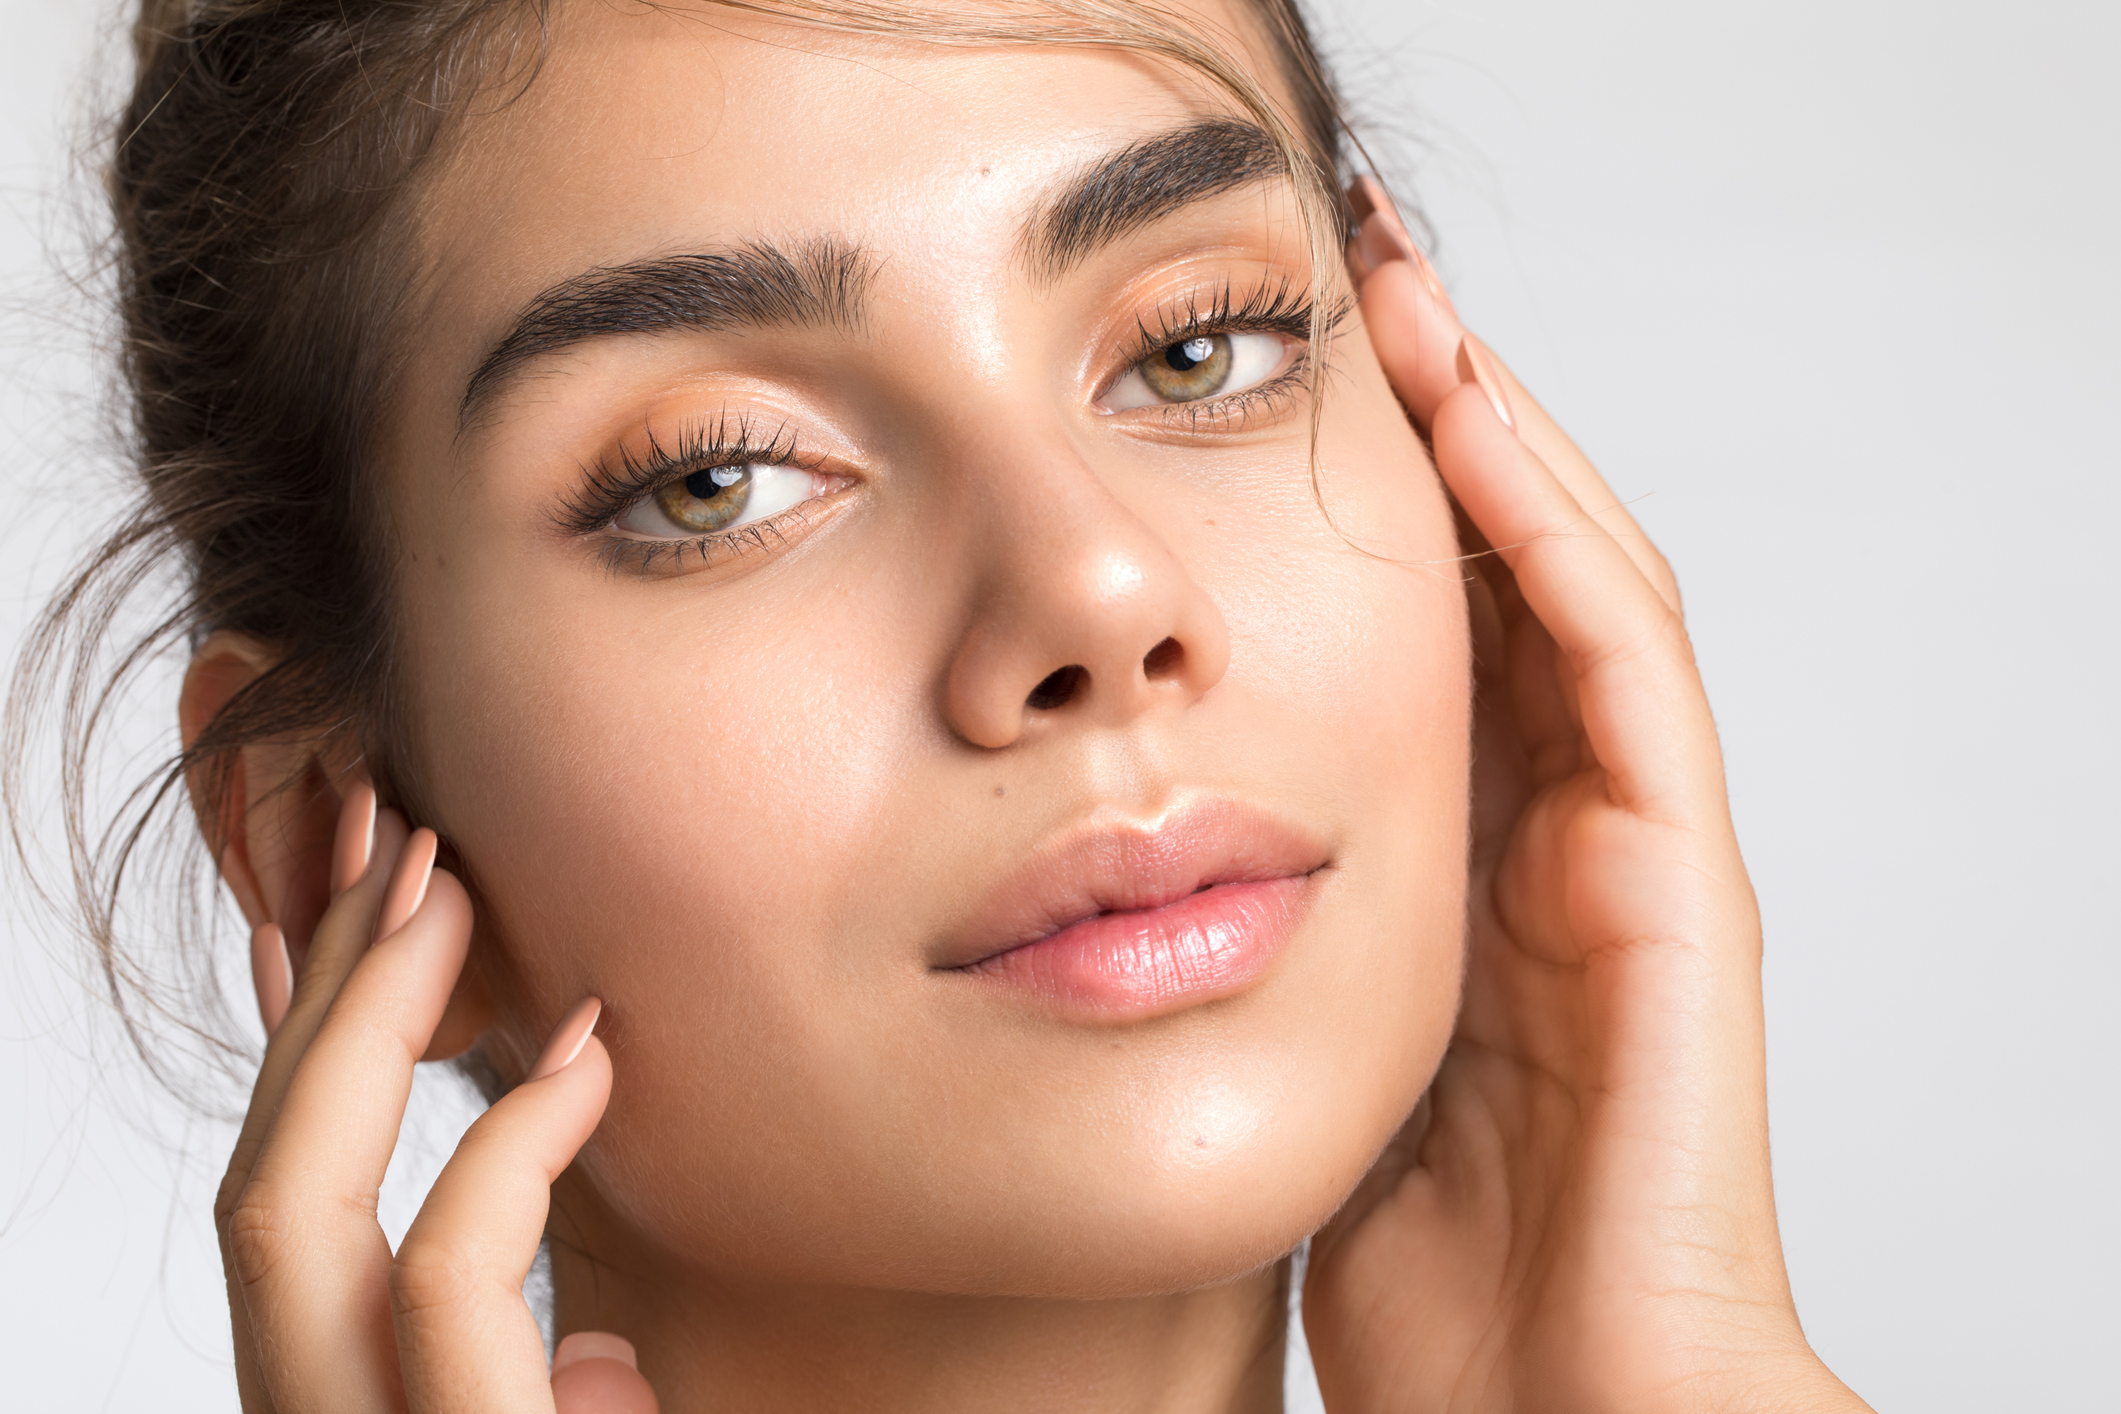 Alabama Plastic and Reconstructive Surgery Blog | The Cosmetic Plastic Surgery Trend